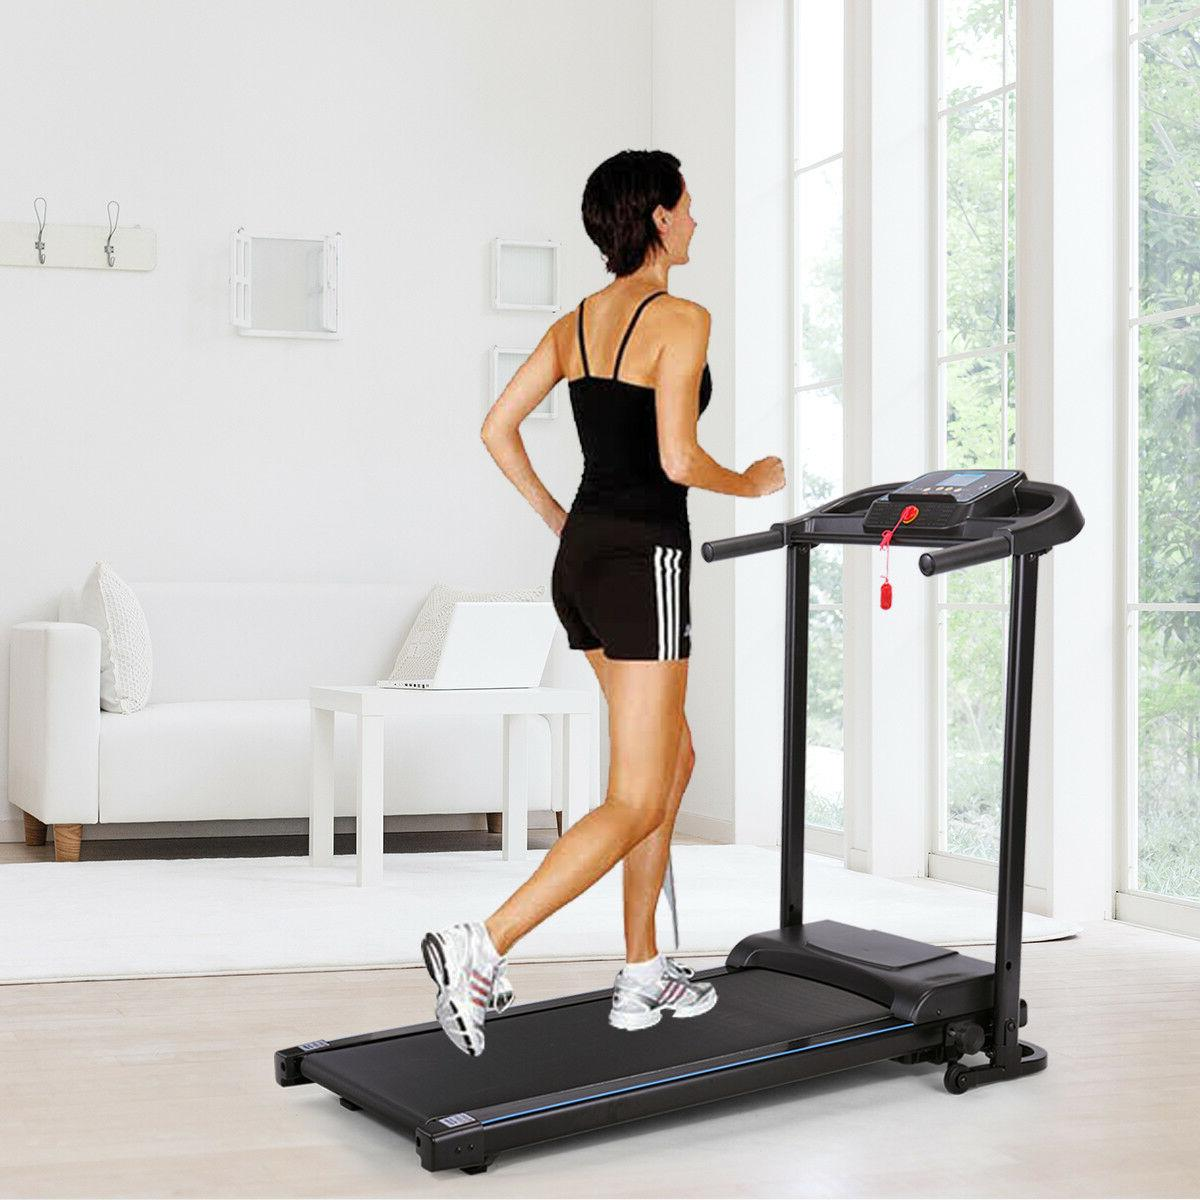 folding treadmill exercise equipment gym and home